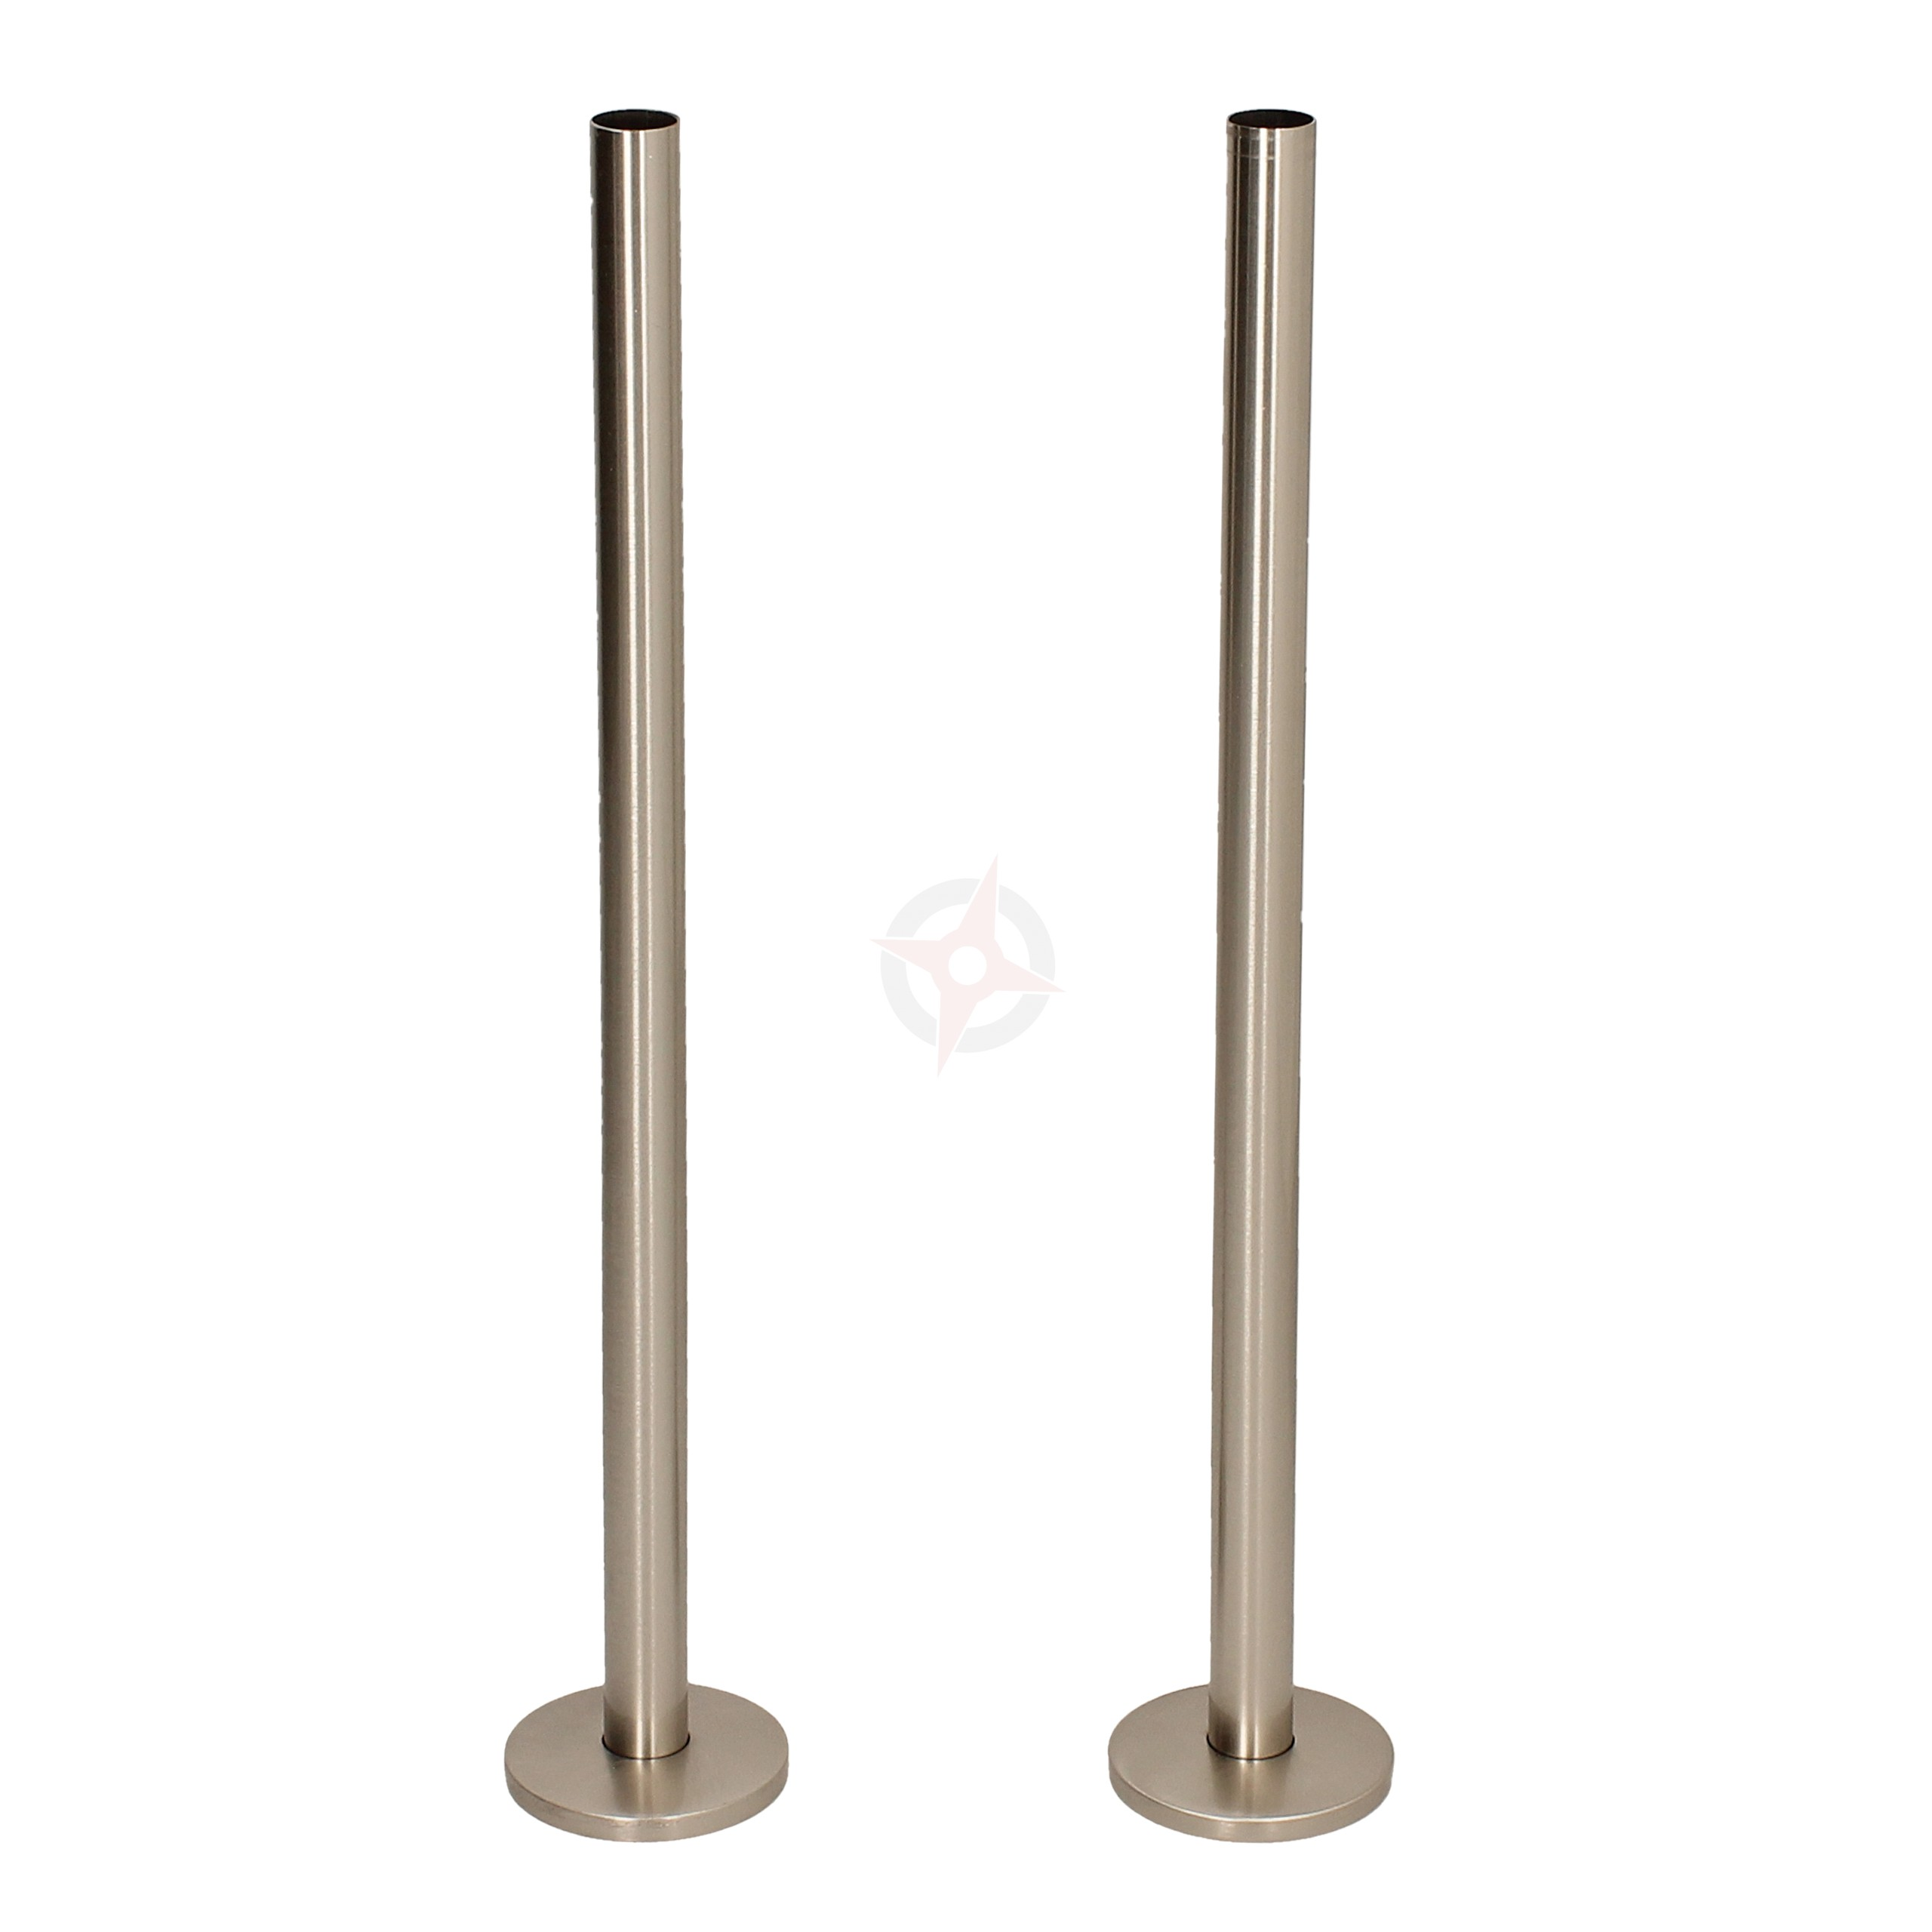 Silver Nickel 15mm x 300mm Pipe Tails and Decoration Floor Plates (Pair)